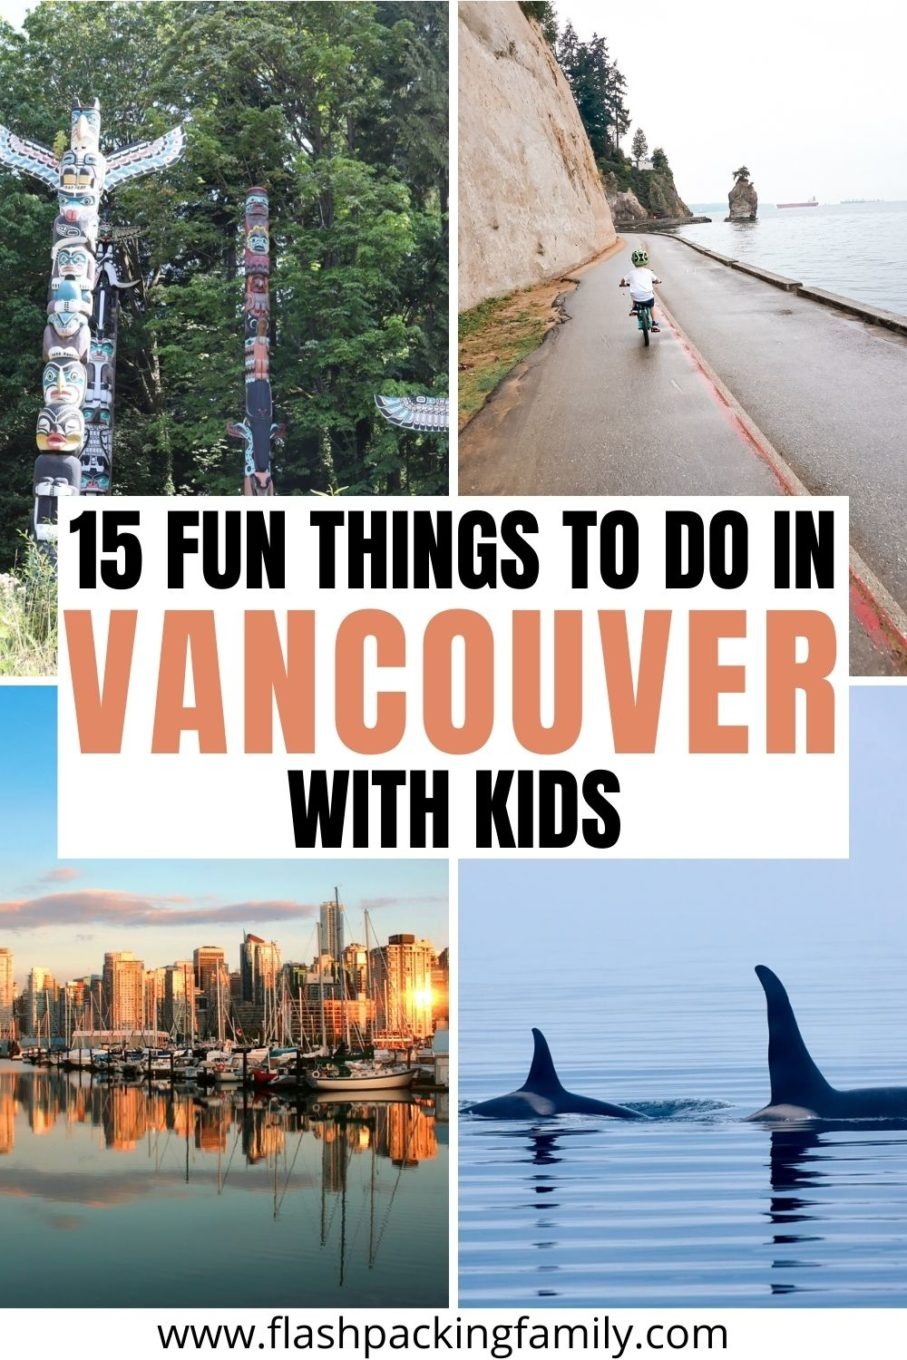 15 Fun Things to do in Vancouver with kids.